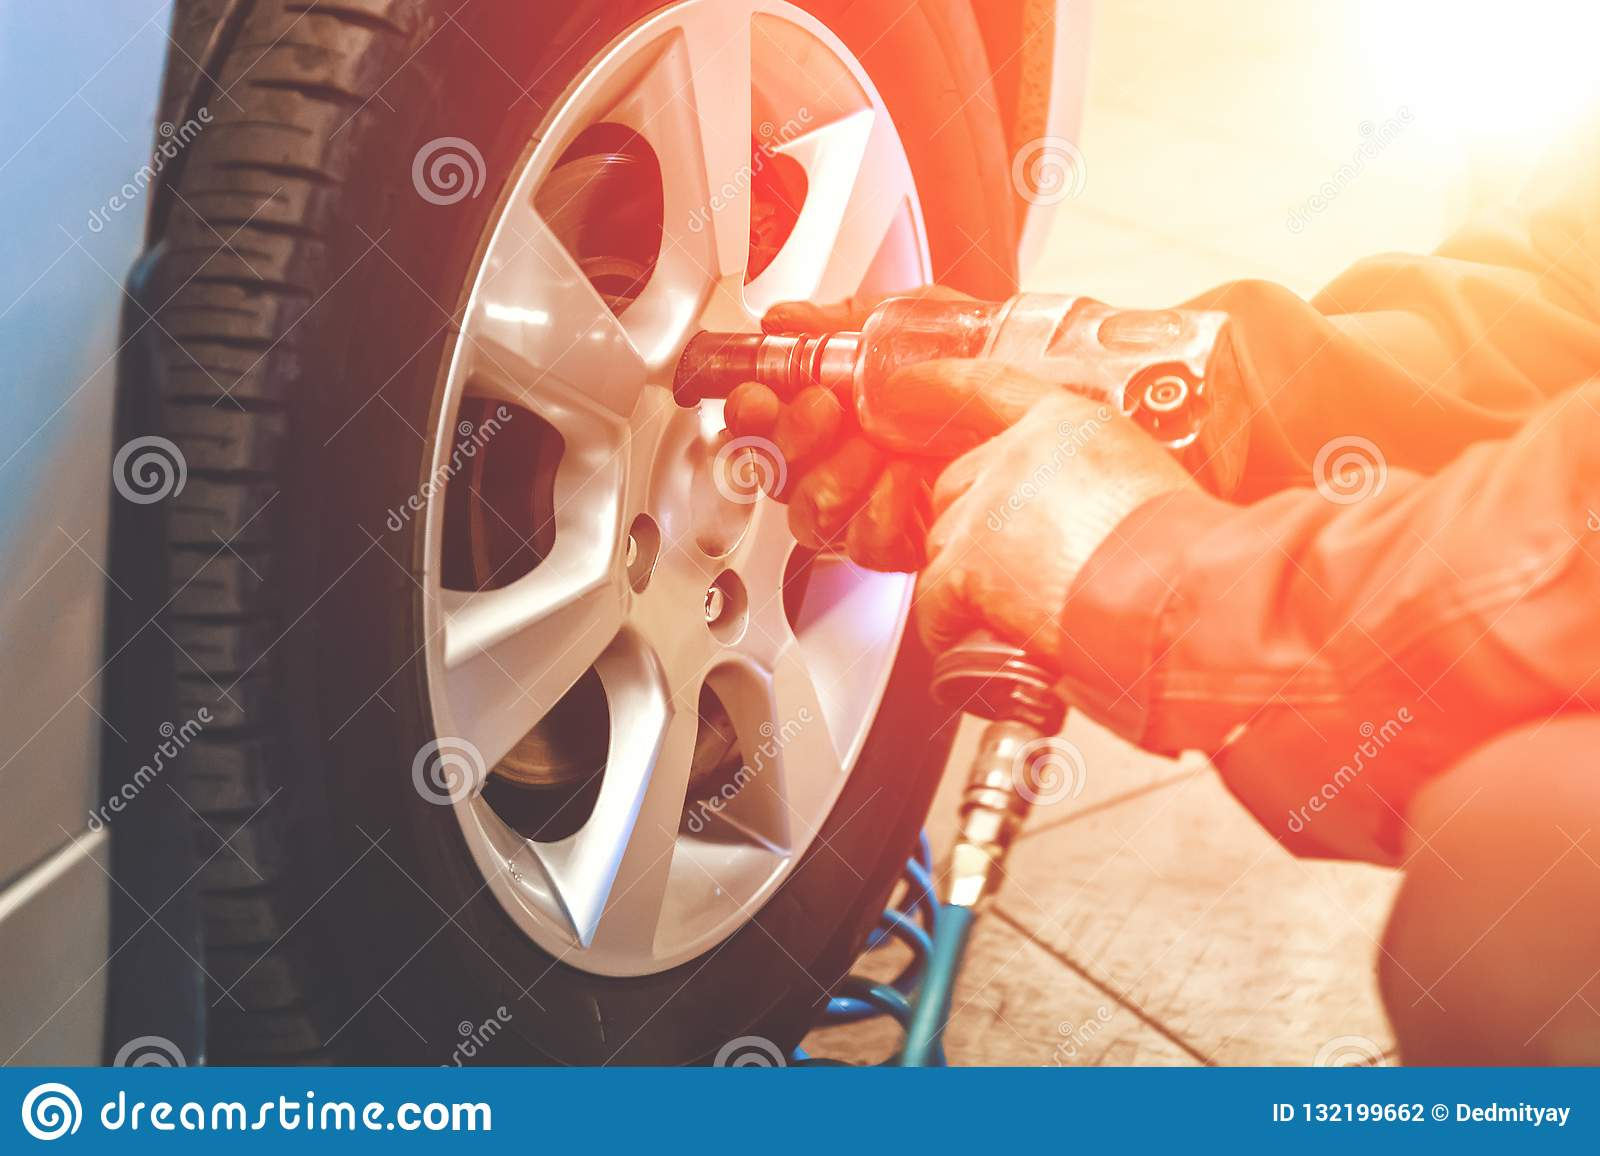 Car mechanic worker doing tire or wheel replacement with pneumatic wrench in garage of repair service station, sunlight effect